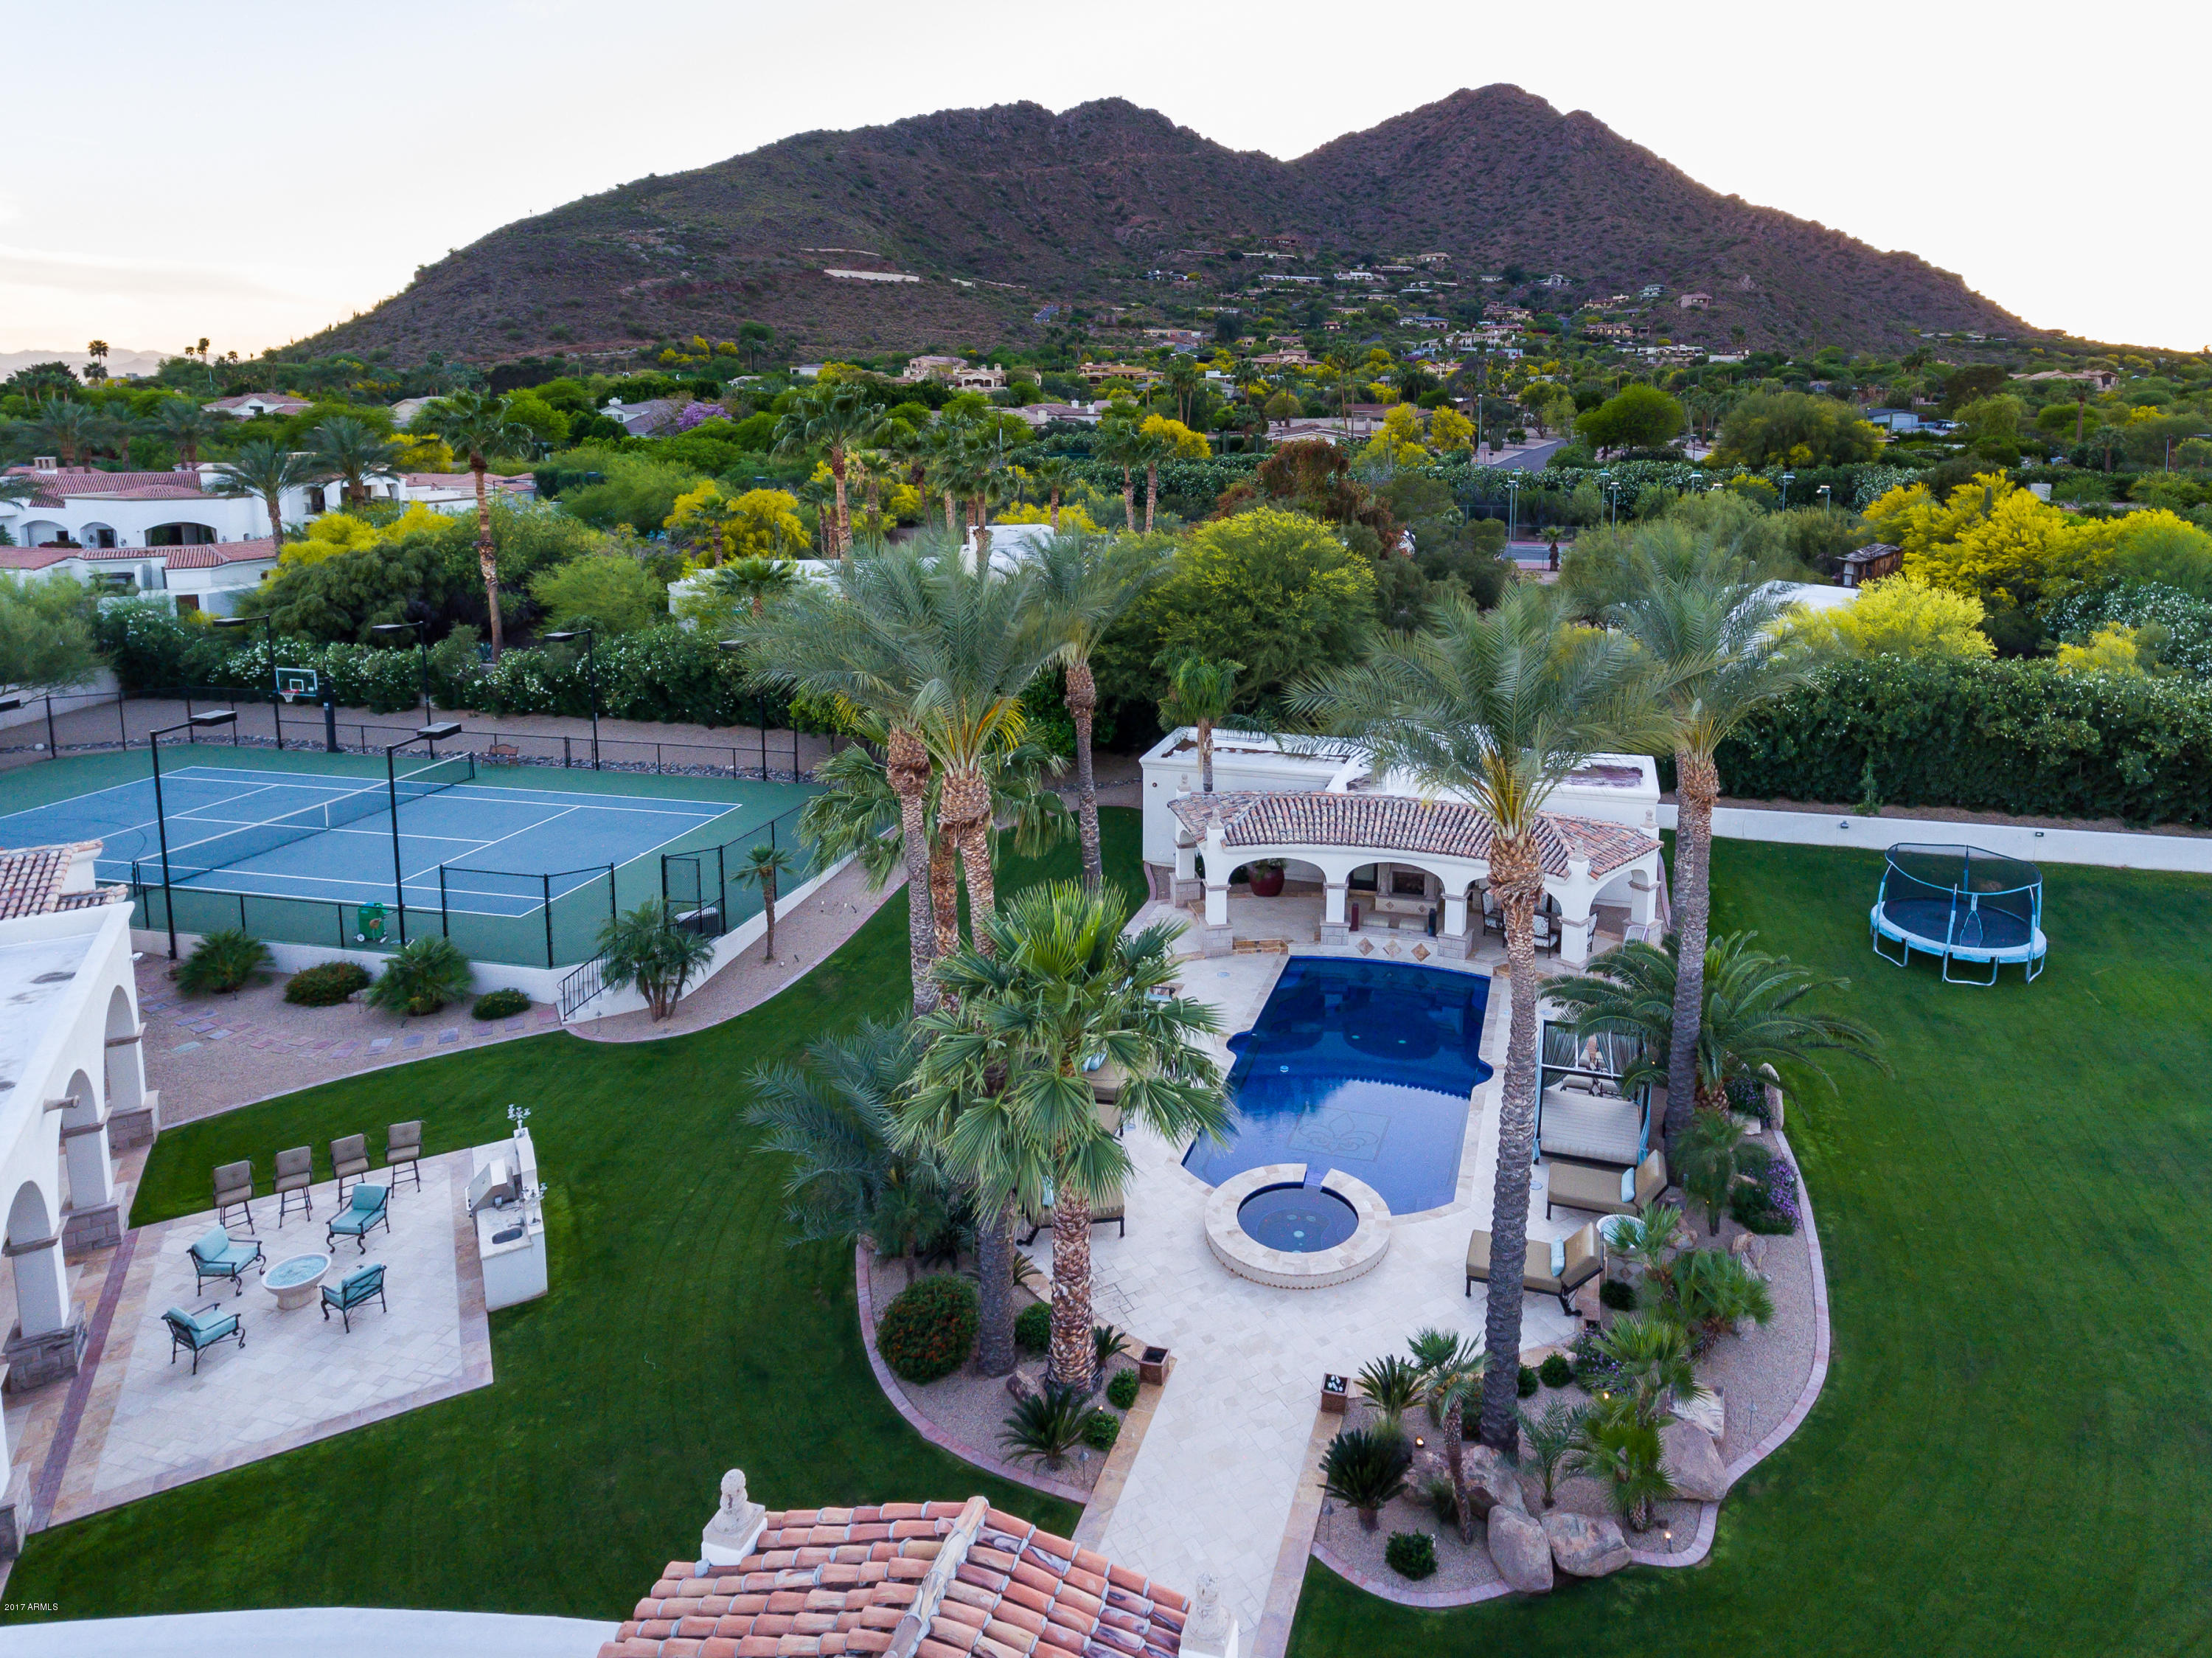 MLS 5552247 5312 N Wilkinson Road, Paradise Valley, AZ 85253 Paradise Valley AZ Tennis Court